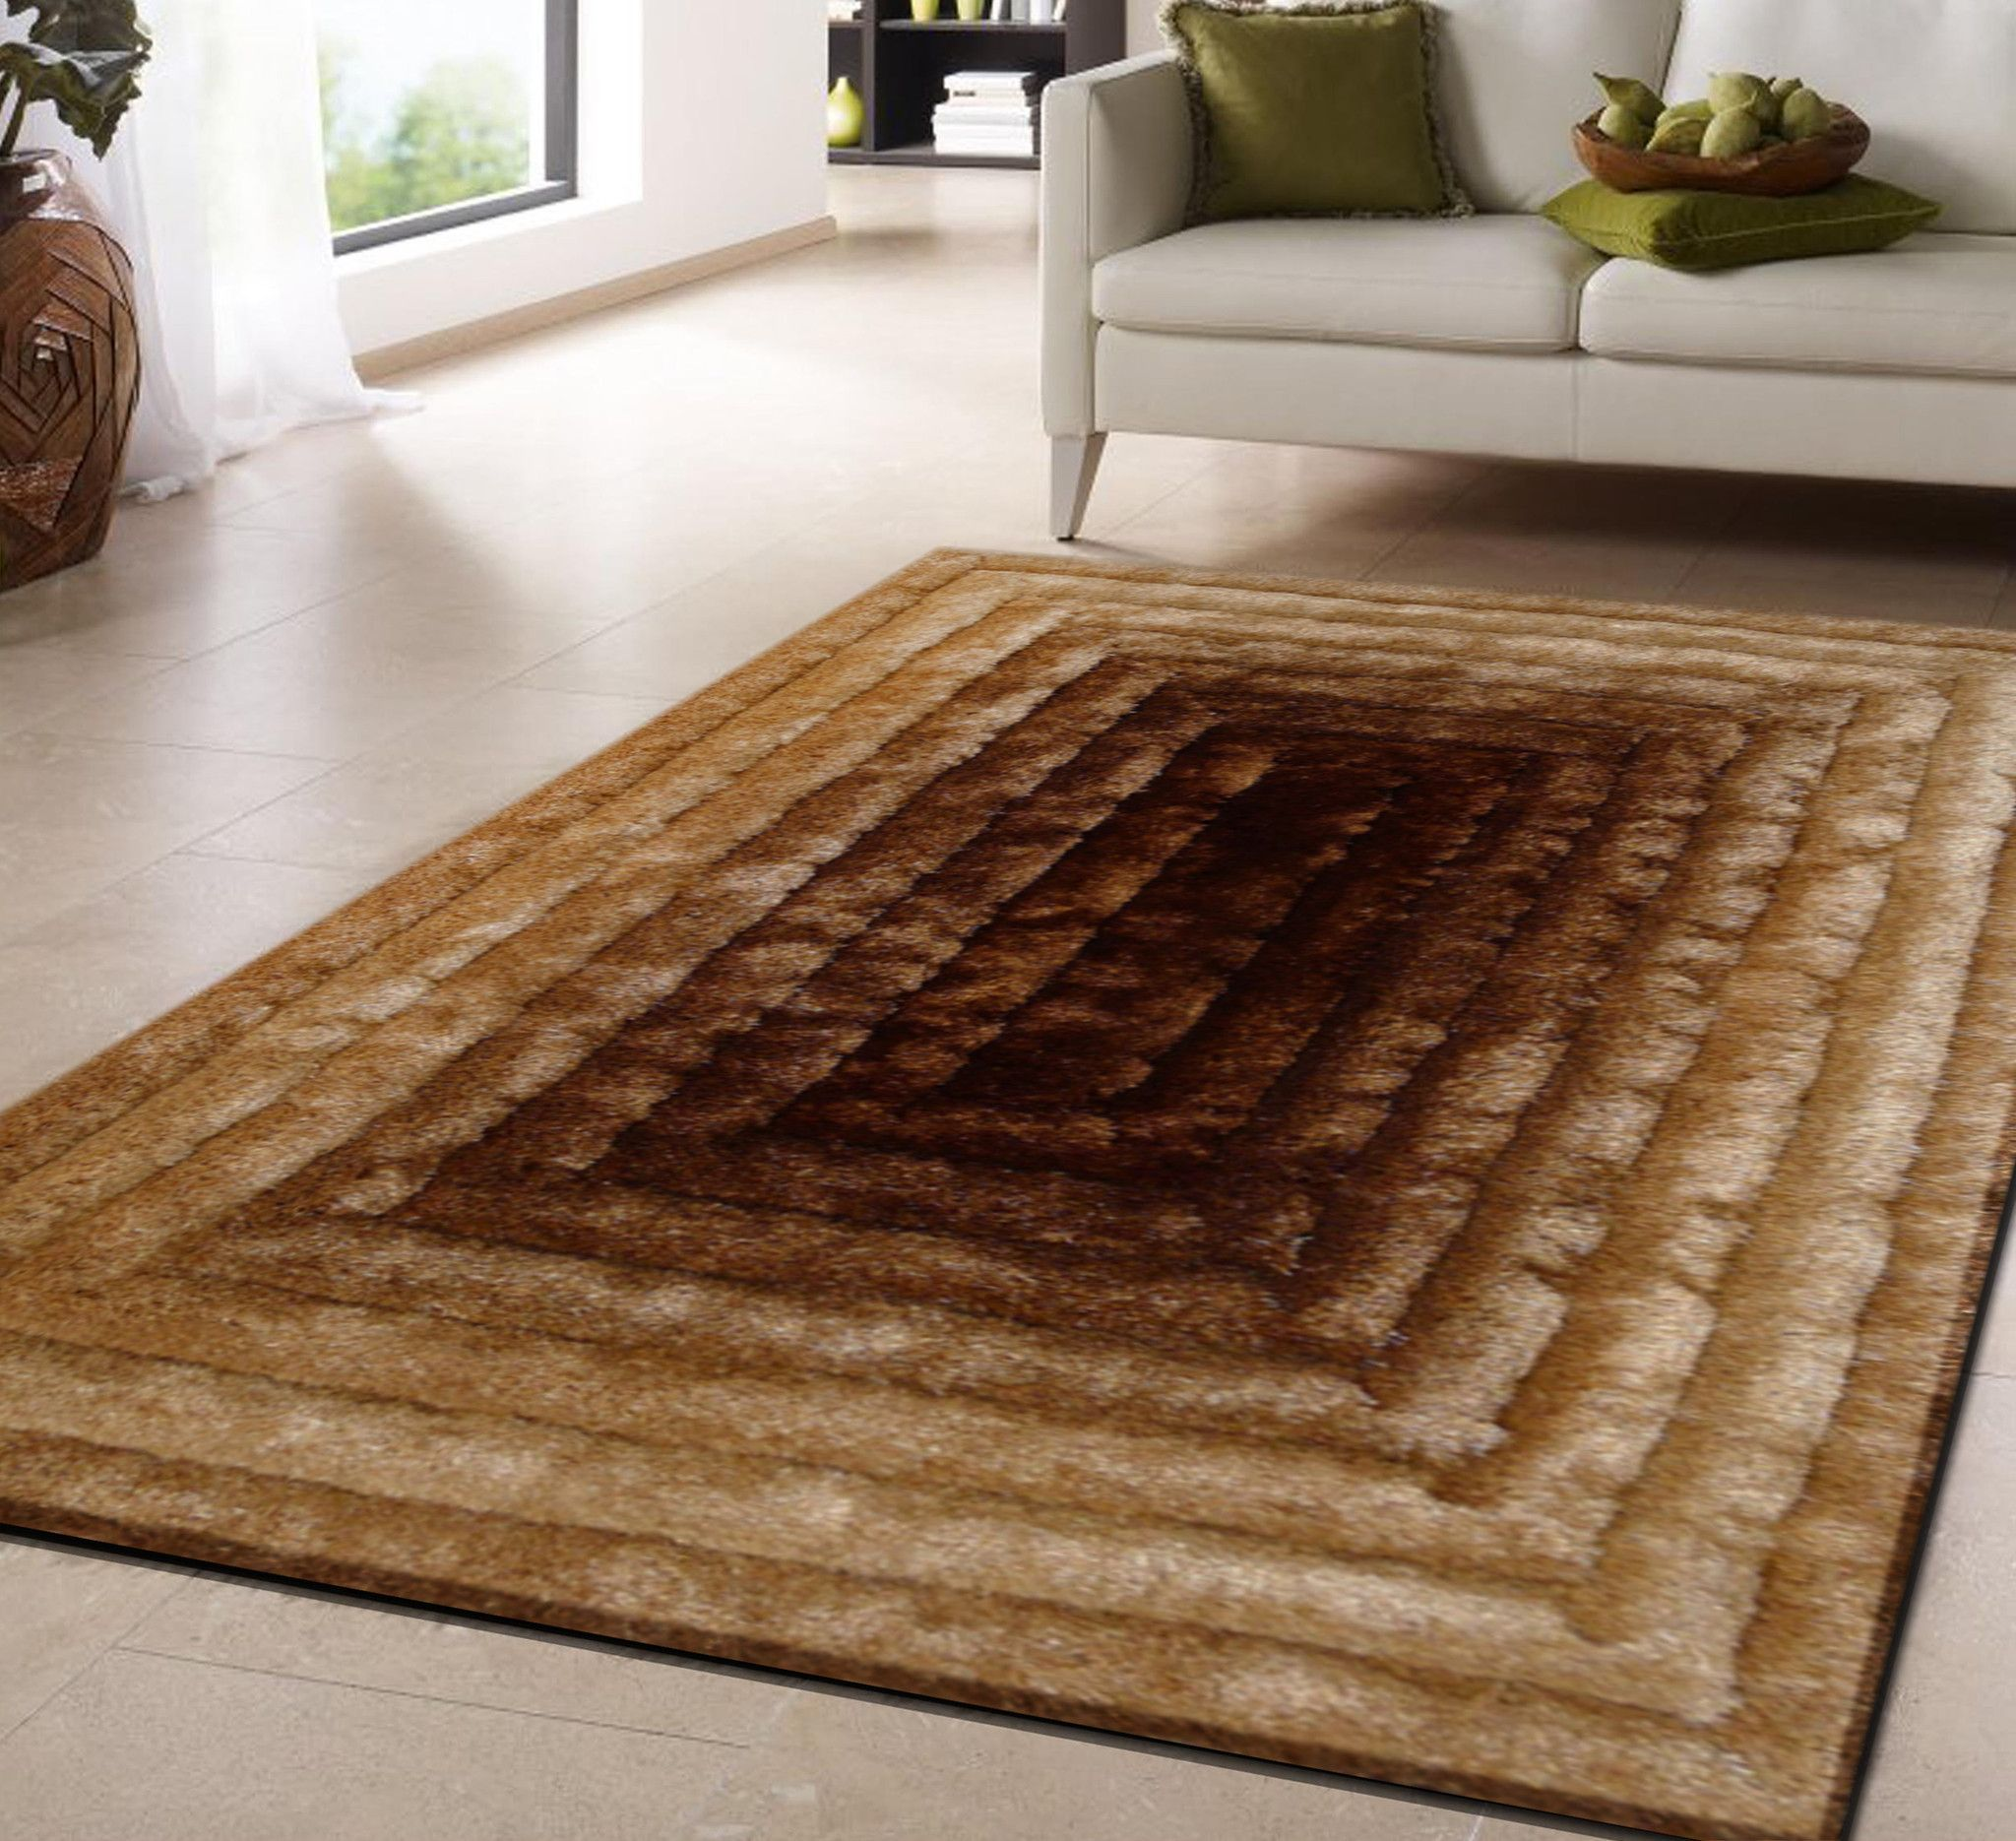 Handmade Vibrant Gold Brown 3 Dimensional Shag Area Rug With Hand